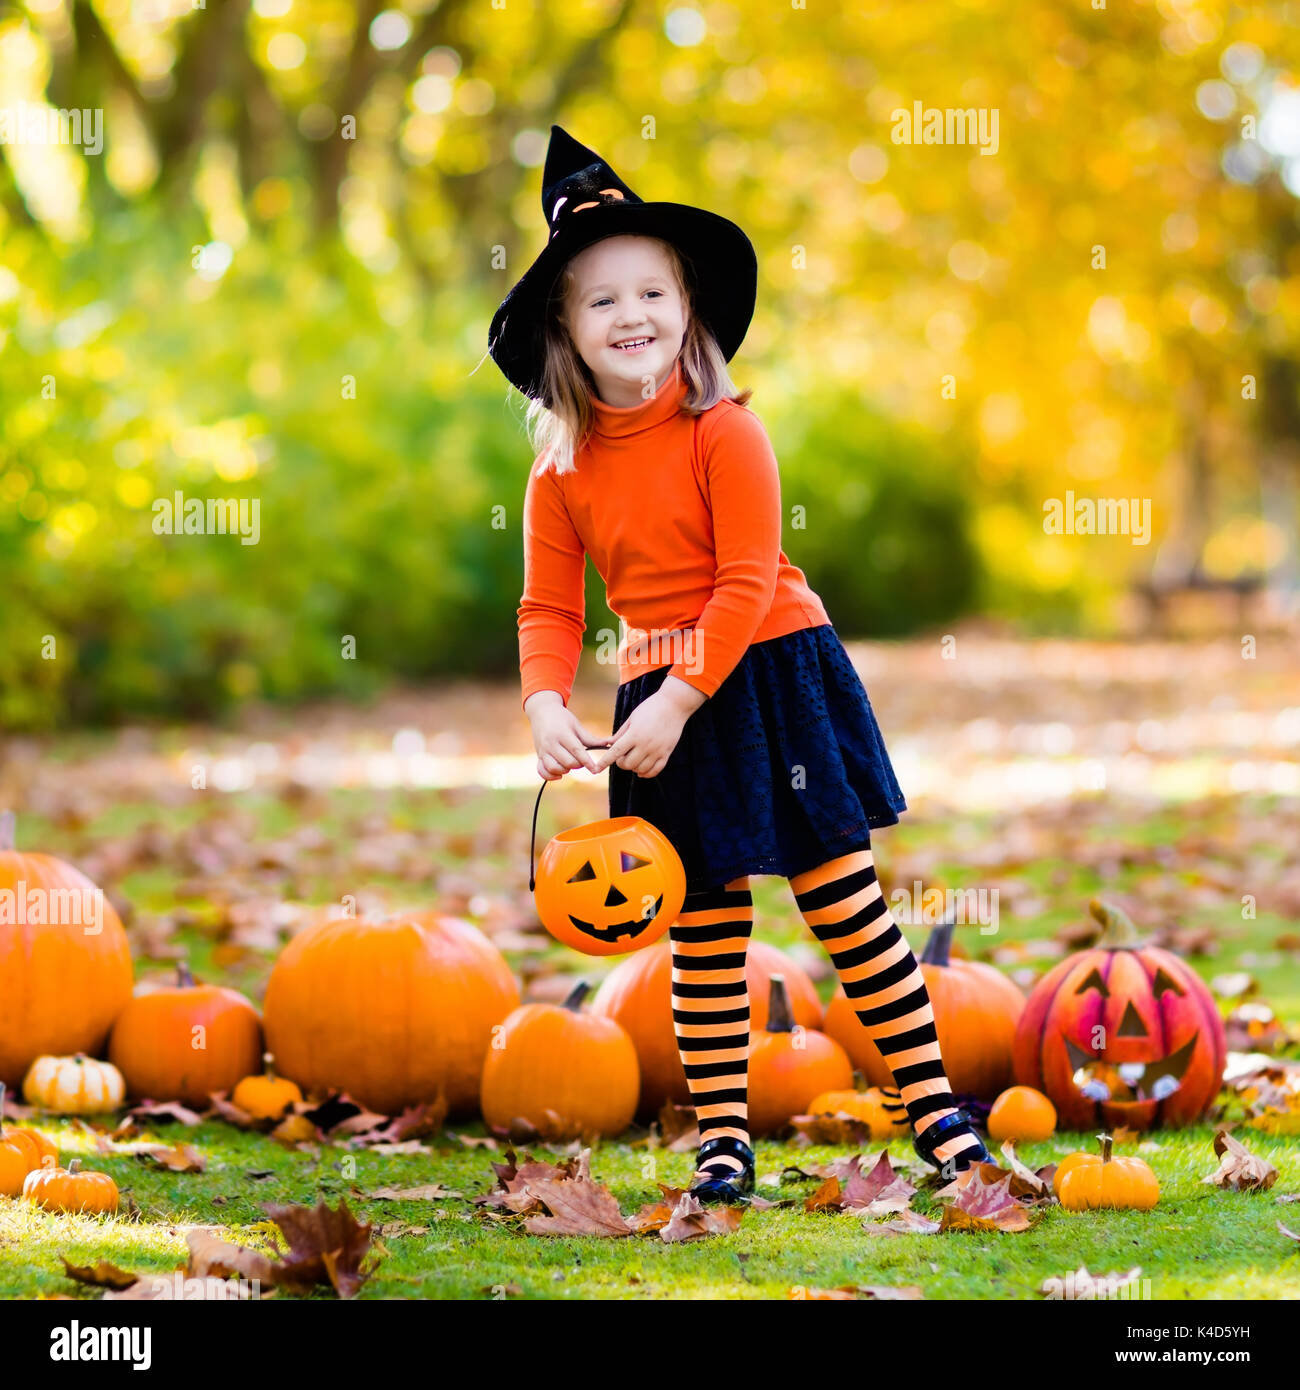 Kids with pumpkin on Halloween. Little girl in witch costume and hat playing in autumn park. Child at Halloween trick or treat. Kid trick or treating.  sc 1 st  Alamy & Kids with pumpkin on Halloween. Little girl in witch costume and hat ...